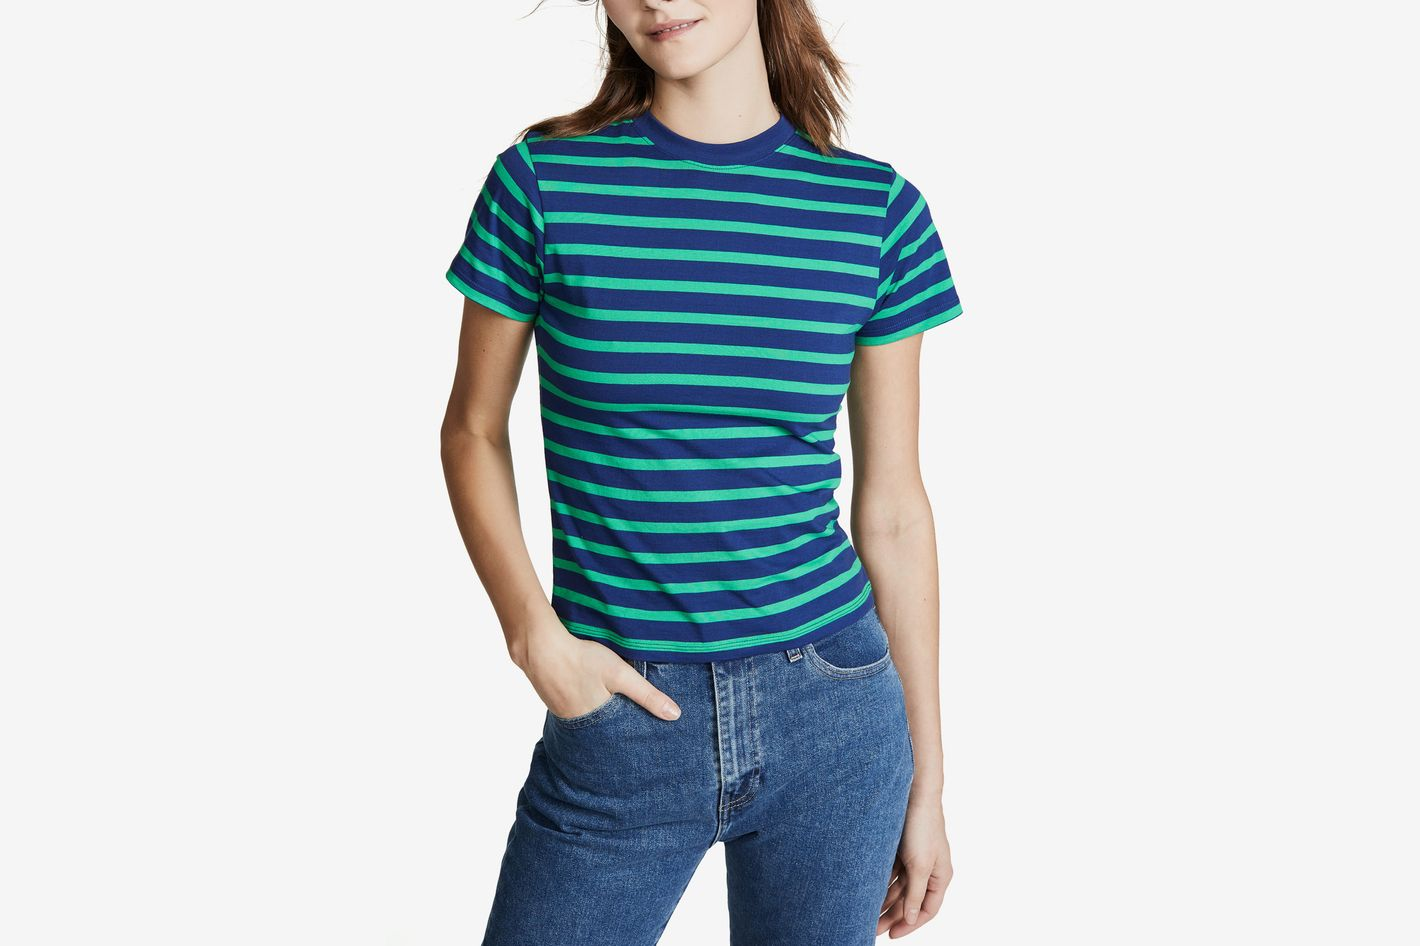 Hanes x Karla Striped Crew Tee Navy/Green